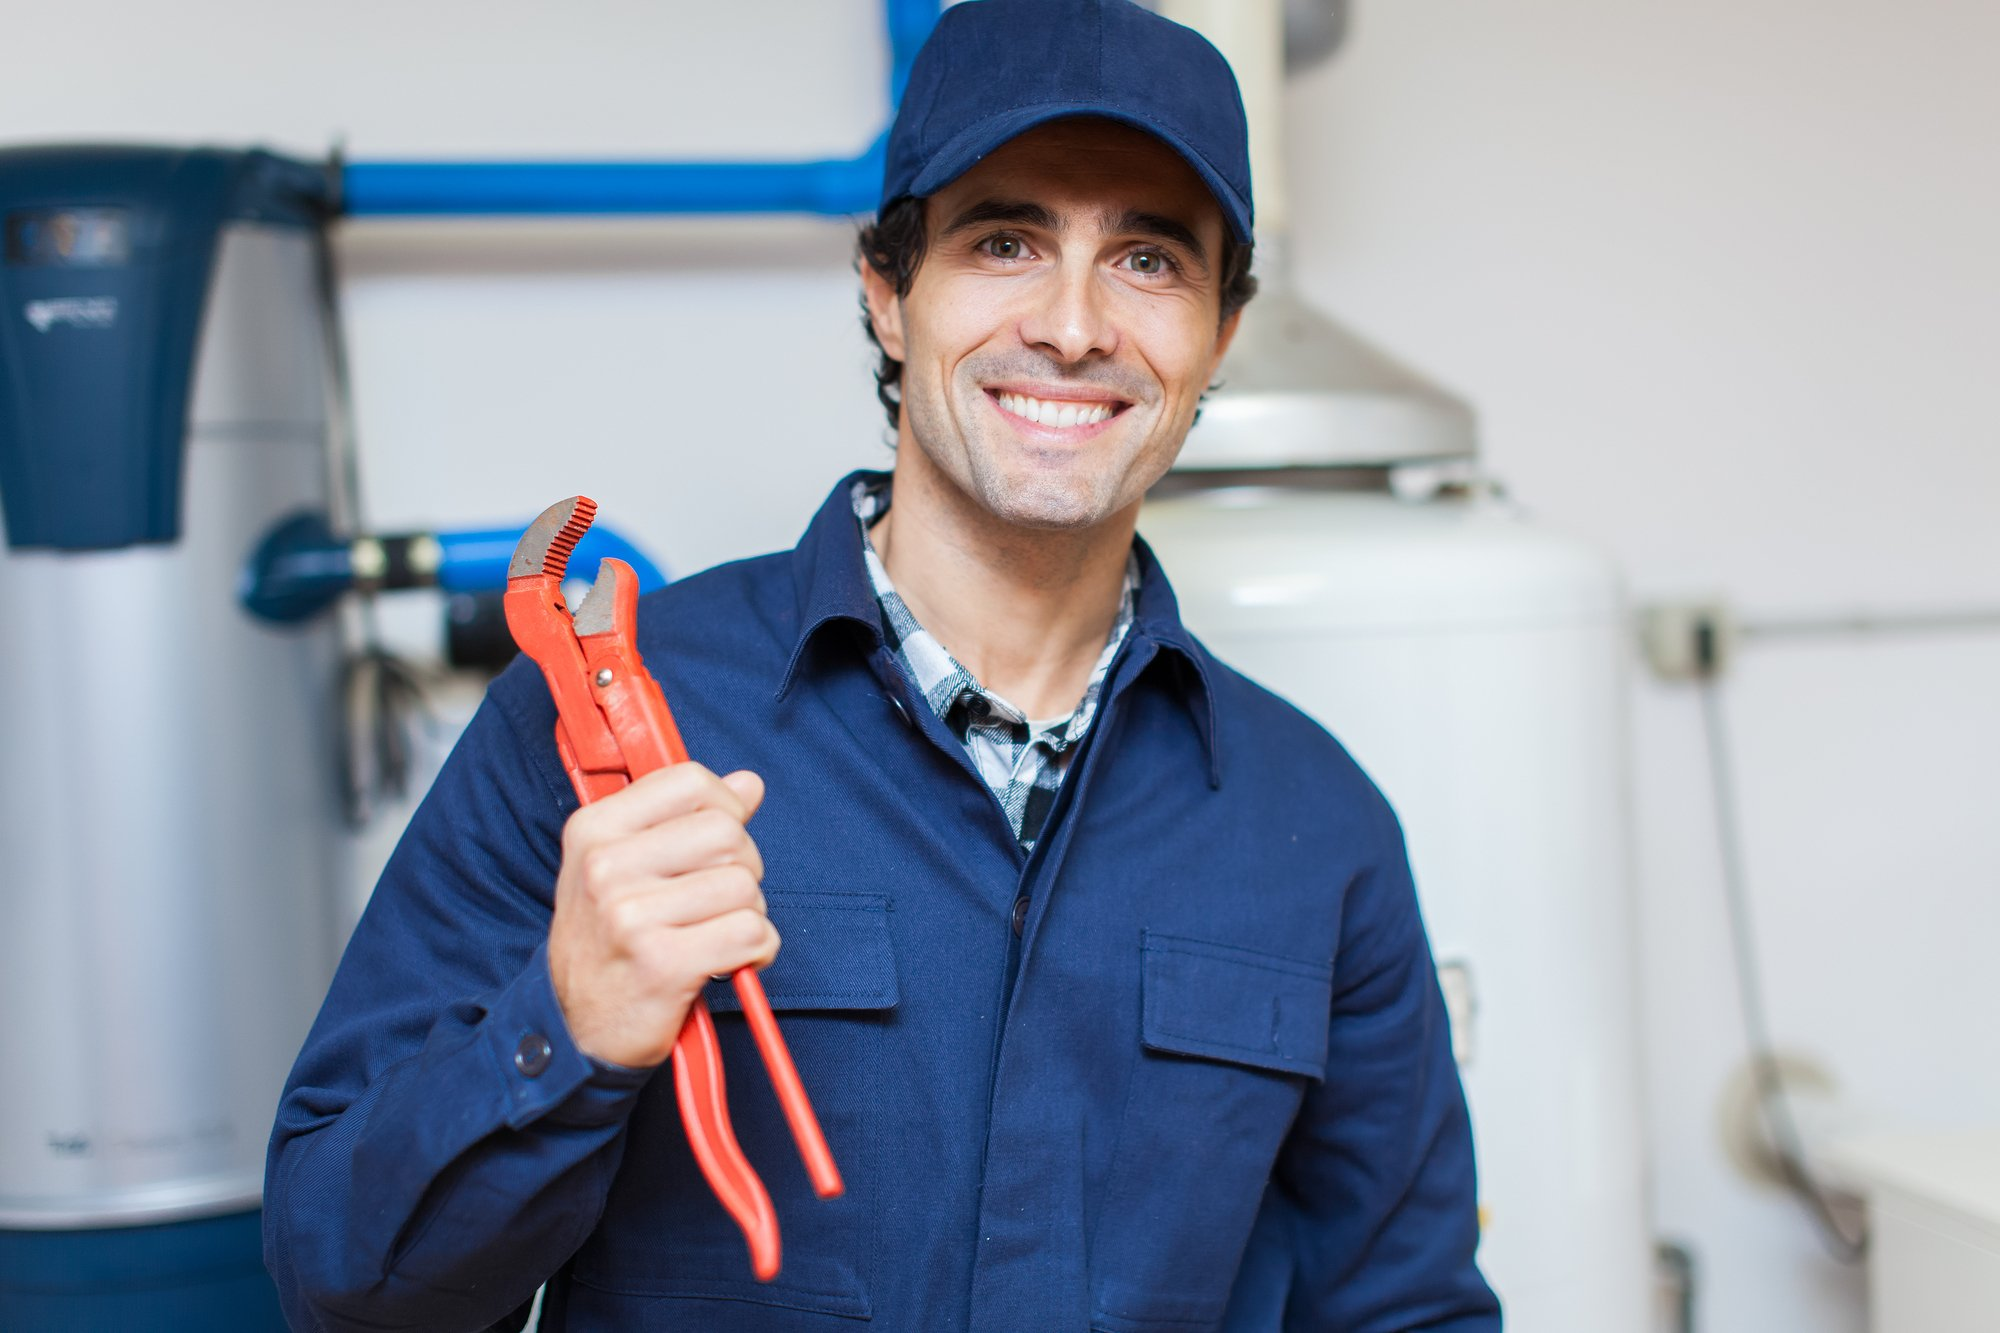 How to Install Sewage Ejector in Basement